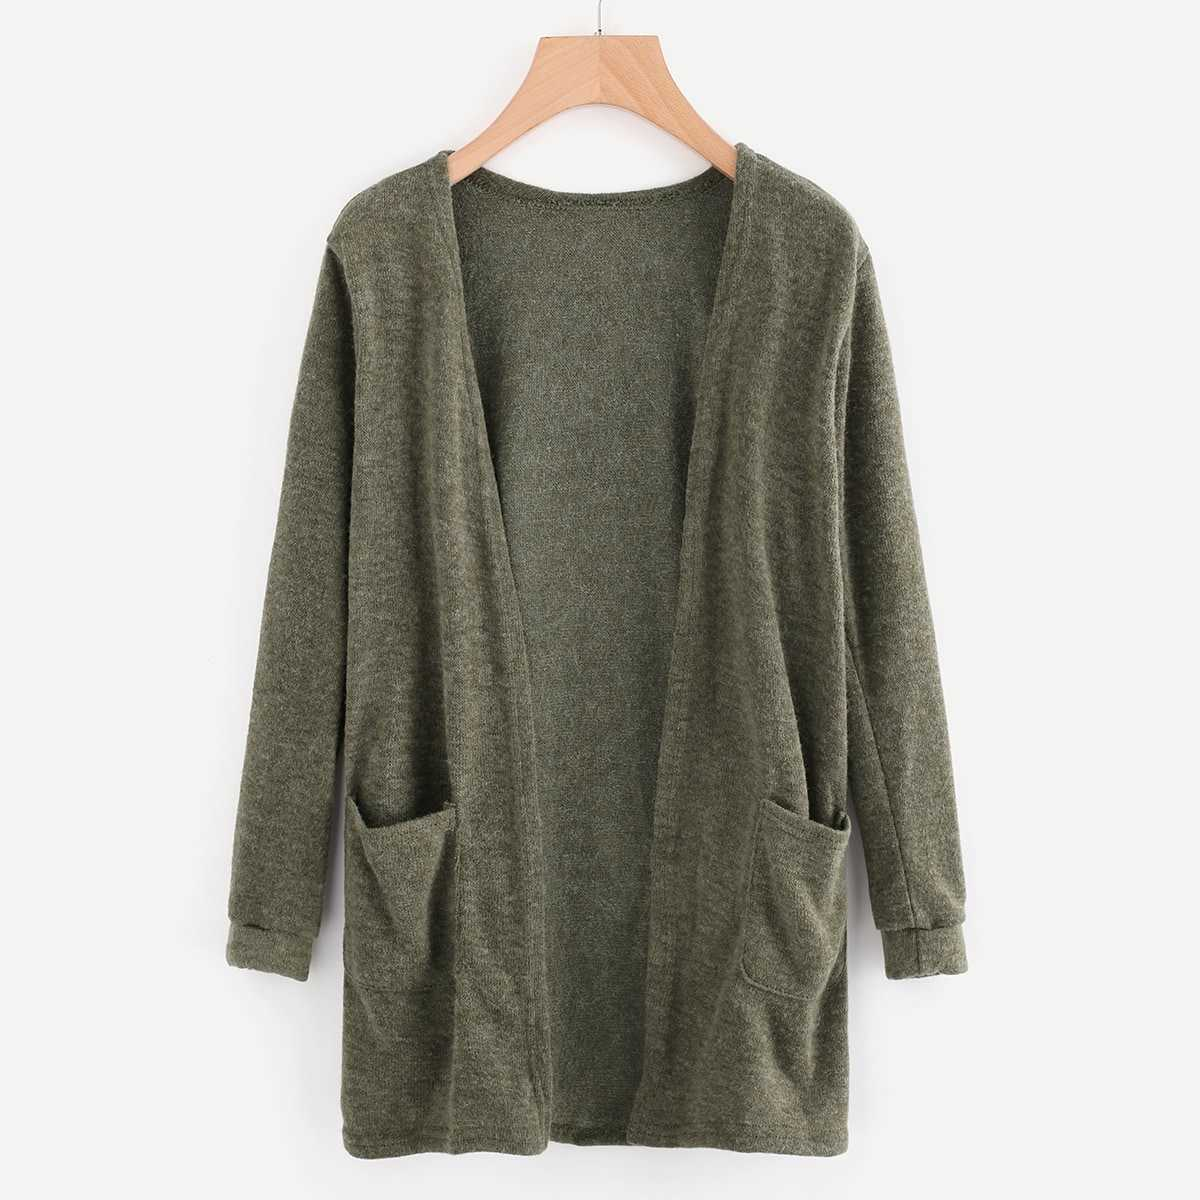 Open Front Cardigan With Pockets in Green by ROMWE on GOOFASH